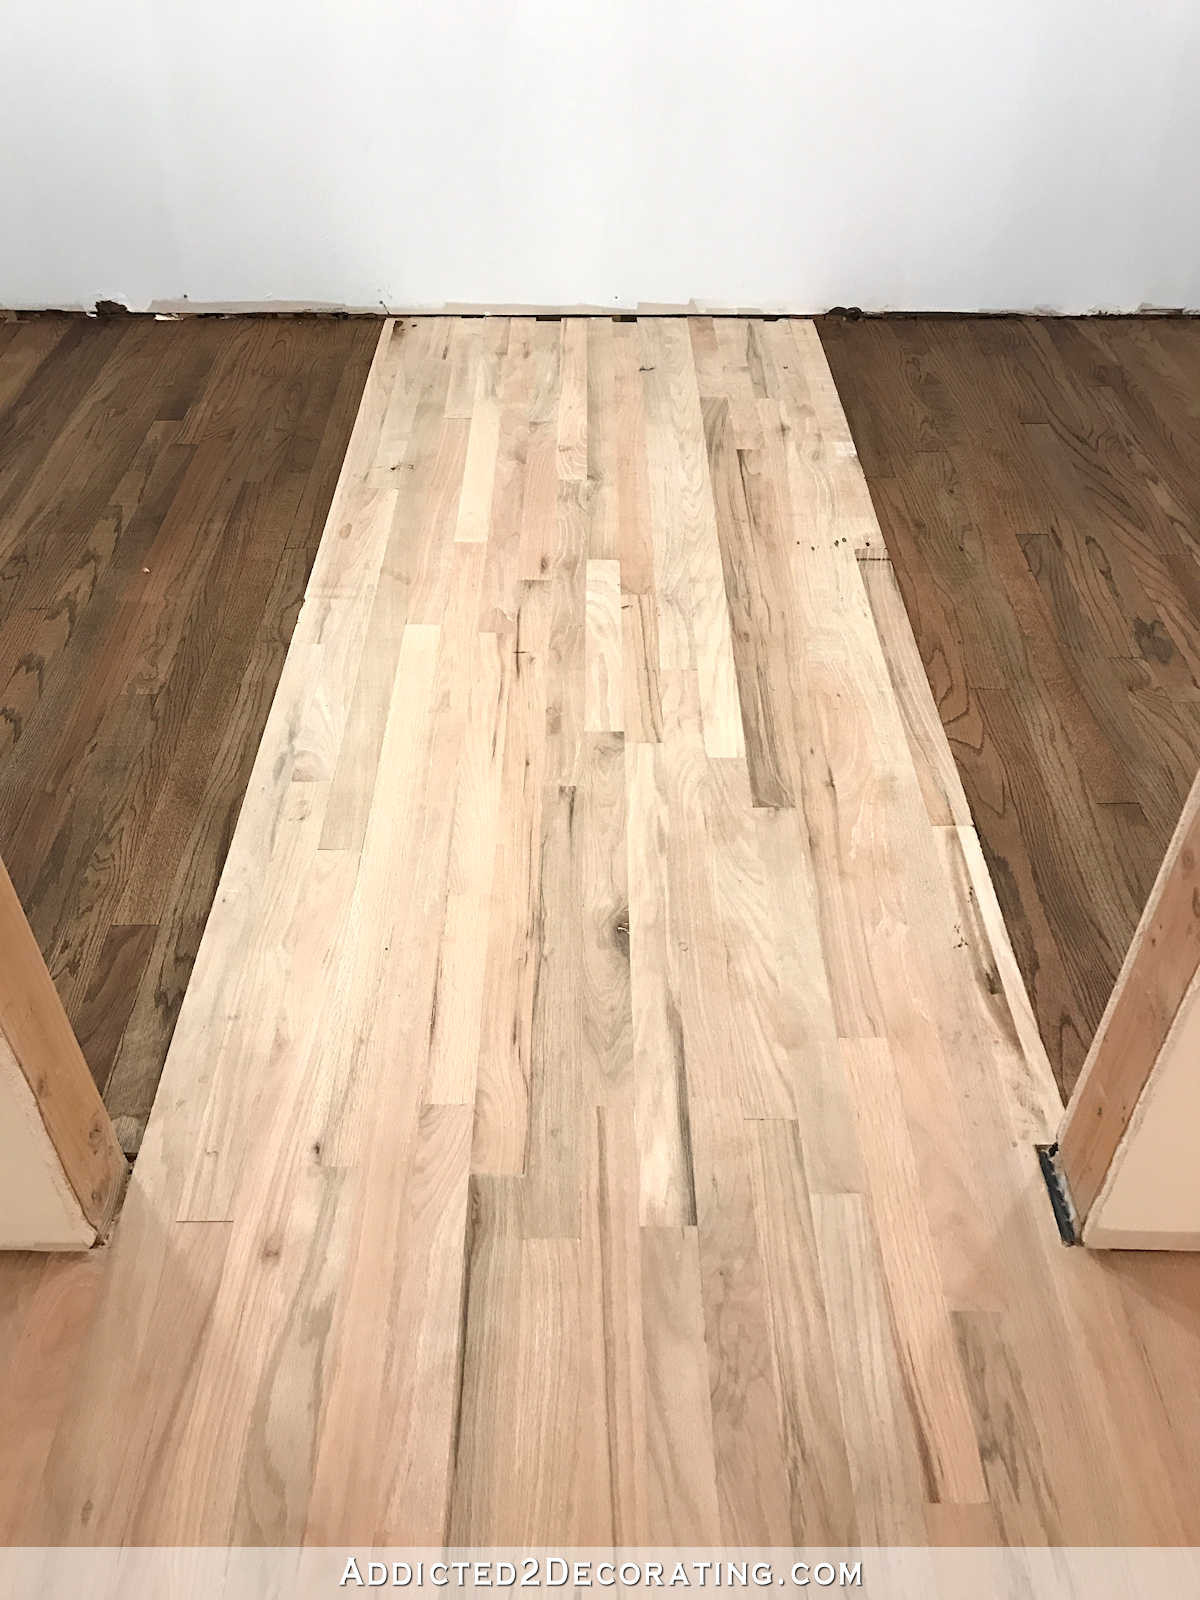 12 Recommended Redoing Hardwood Floors Old House 2021 free download redoing hardwood floors old house of adventures in staining my red oak hardwood floors products process regarding staining red oak hardwood floors 11 stain on left and right sides of the